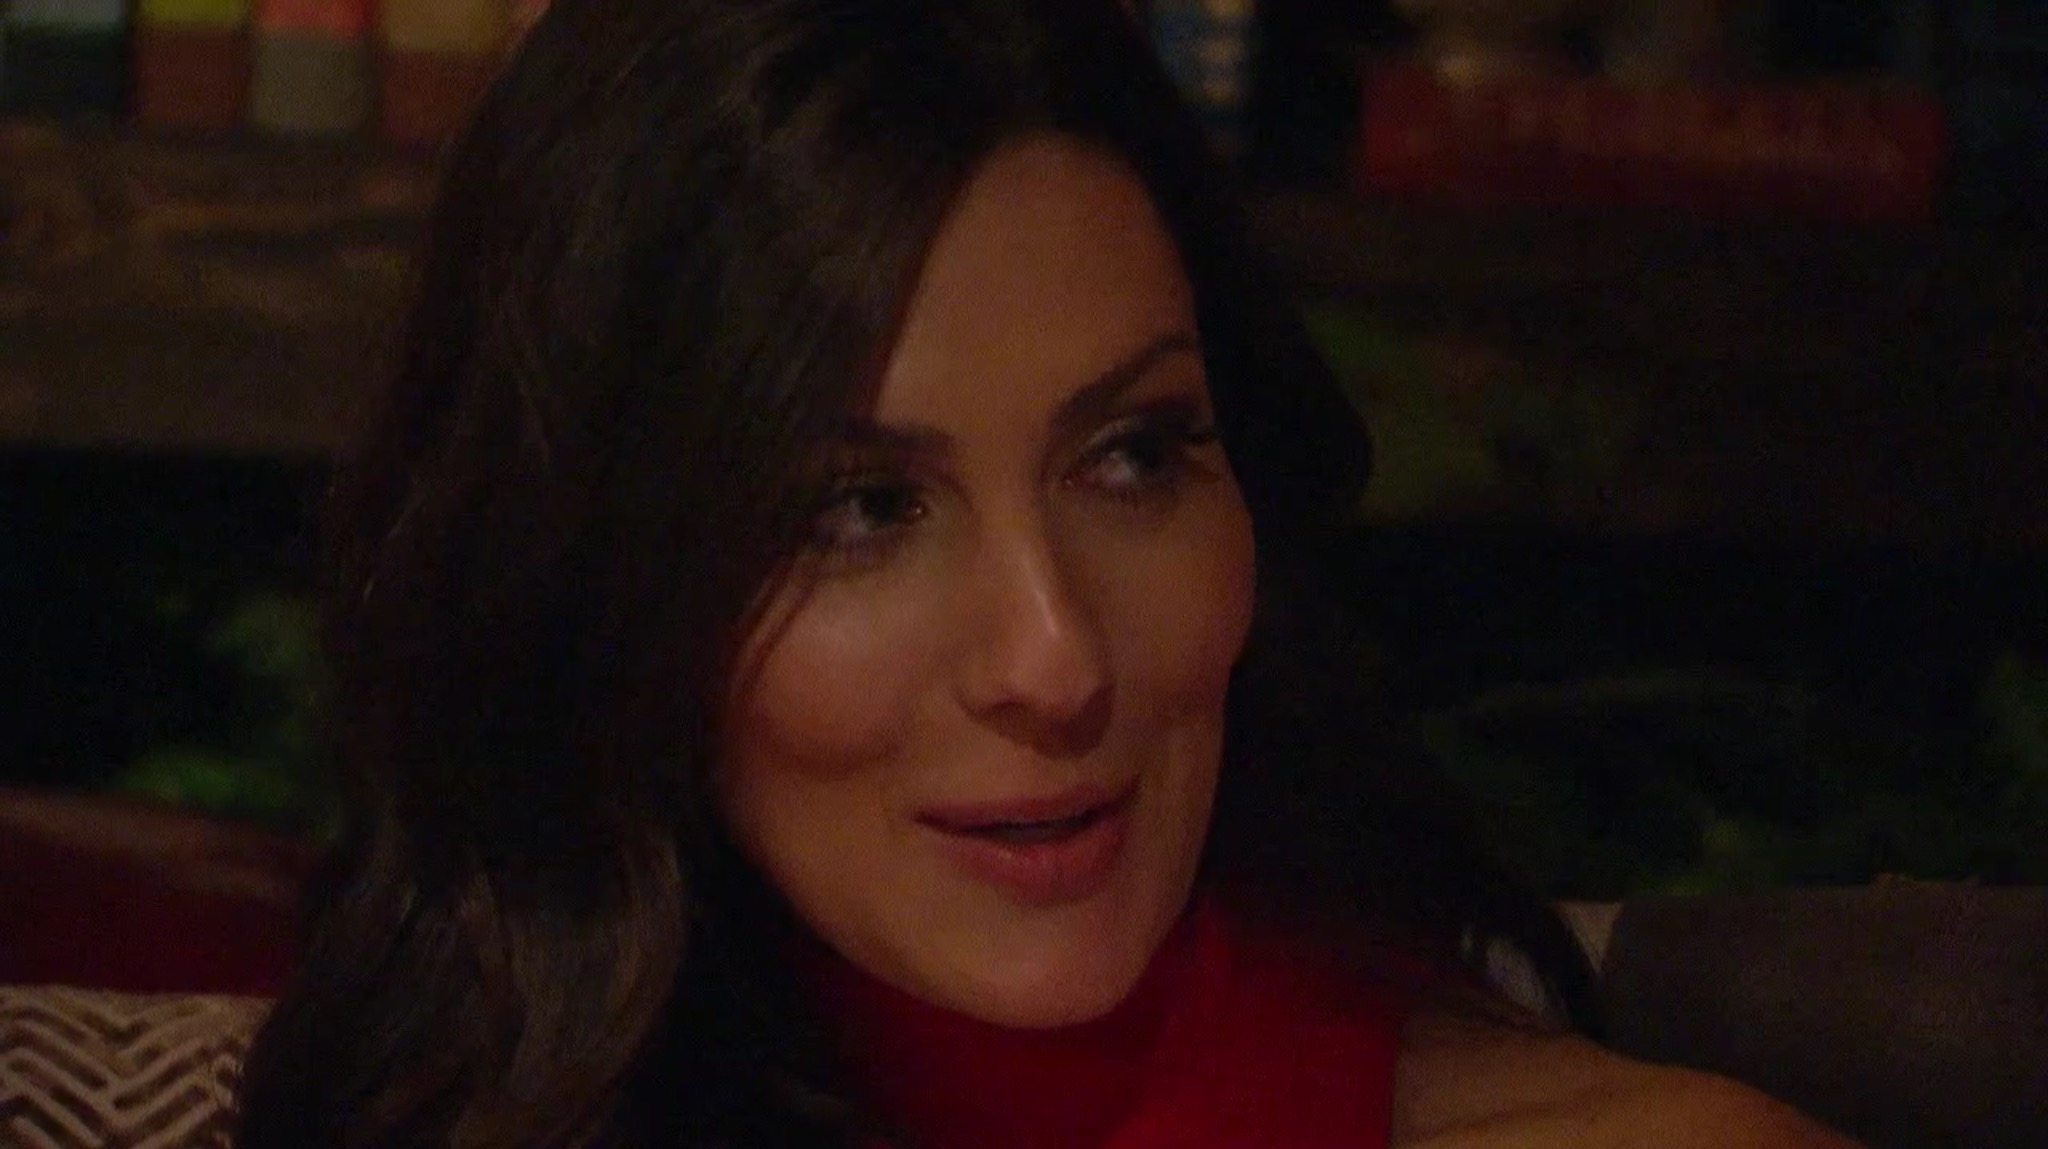 Bachelorette 14 - Becca Kufrin - ScreenCaps - NO Discussion - *Sleuthing Spoilers* Image304